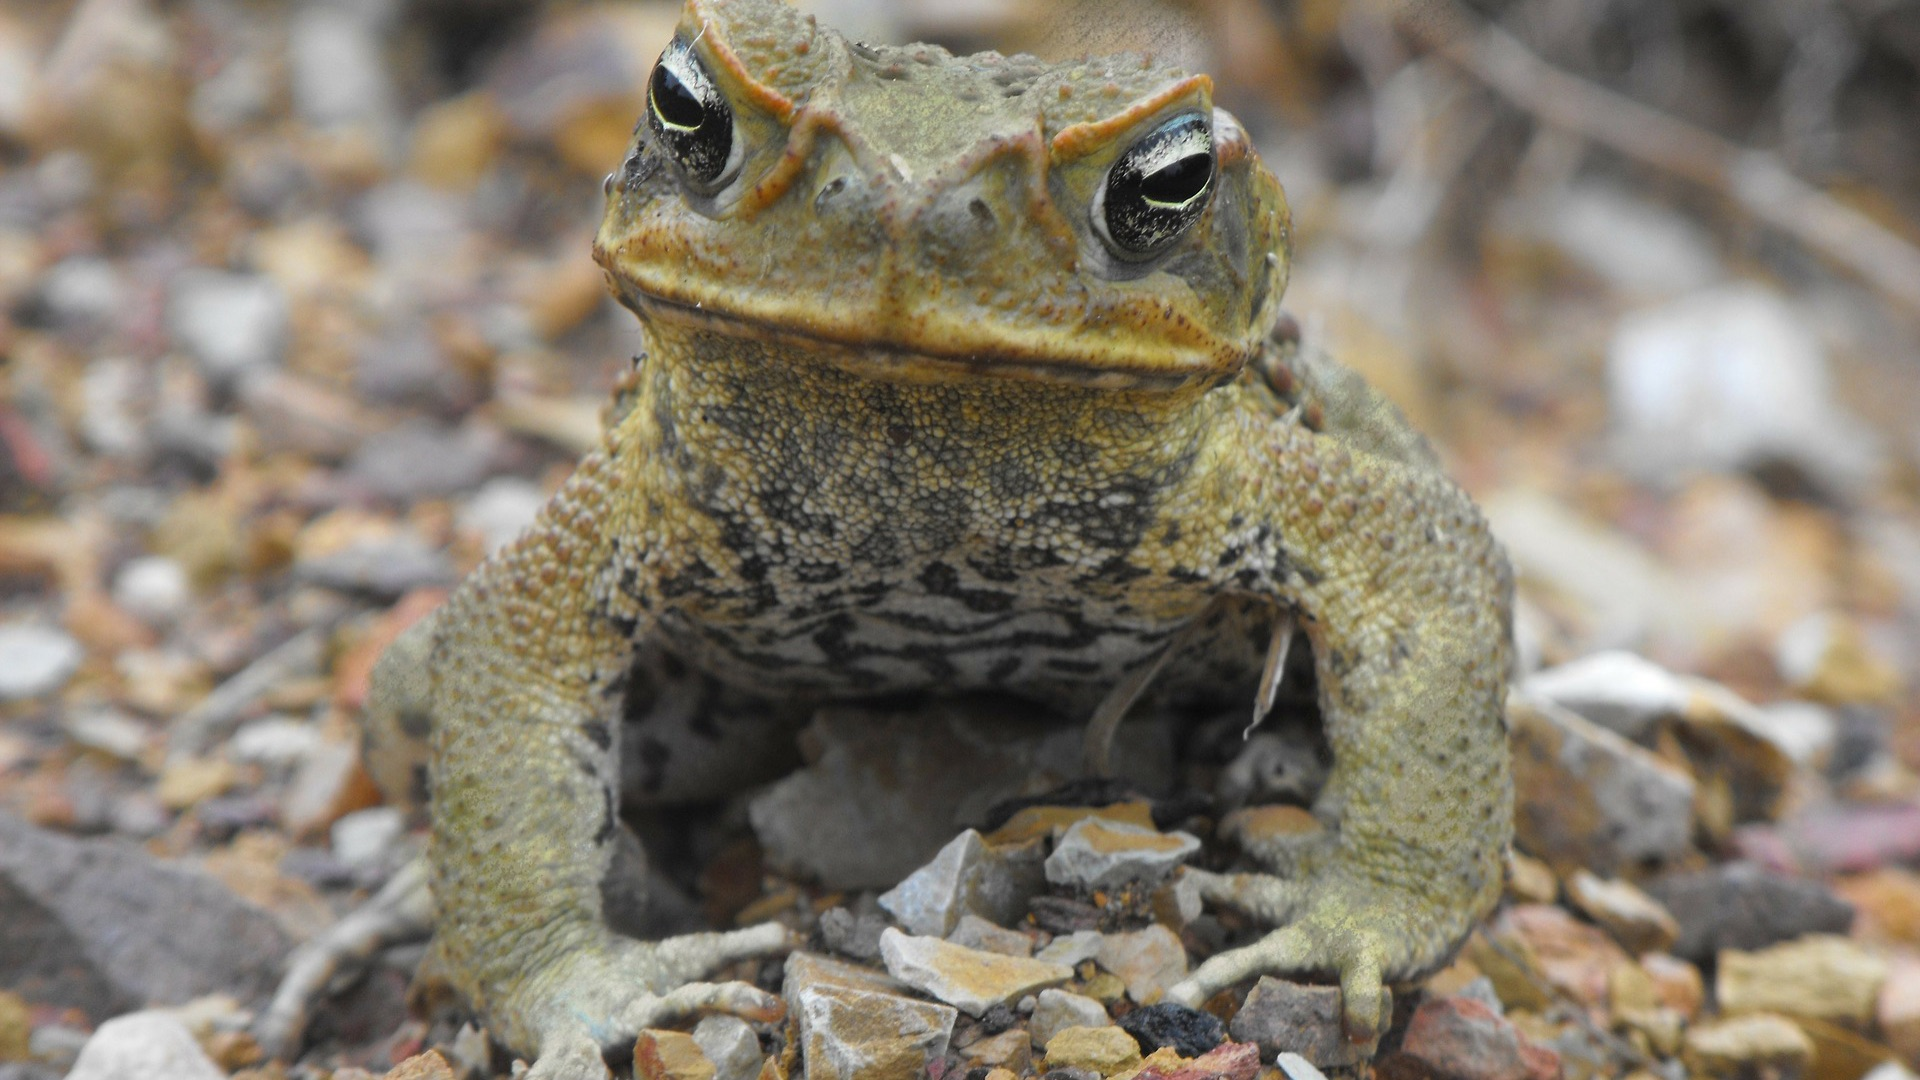 You'll never think of cane toads in quite the same way again